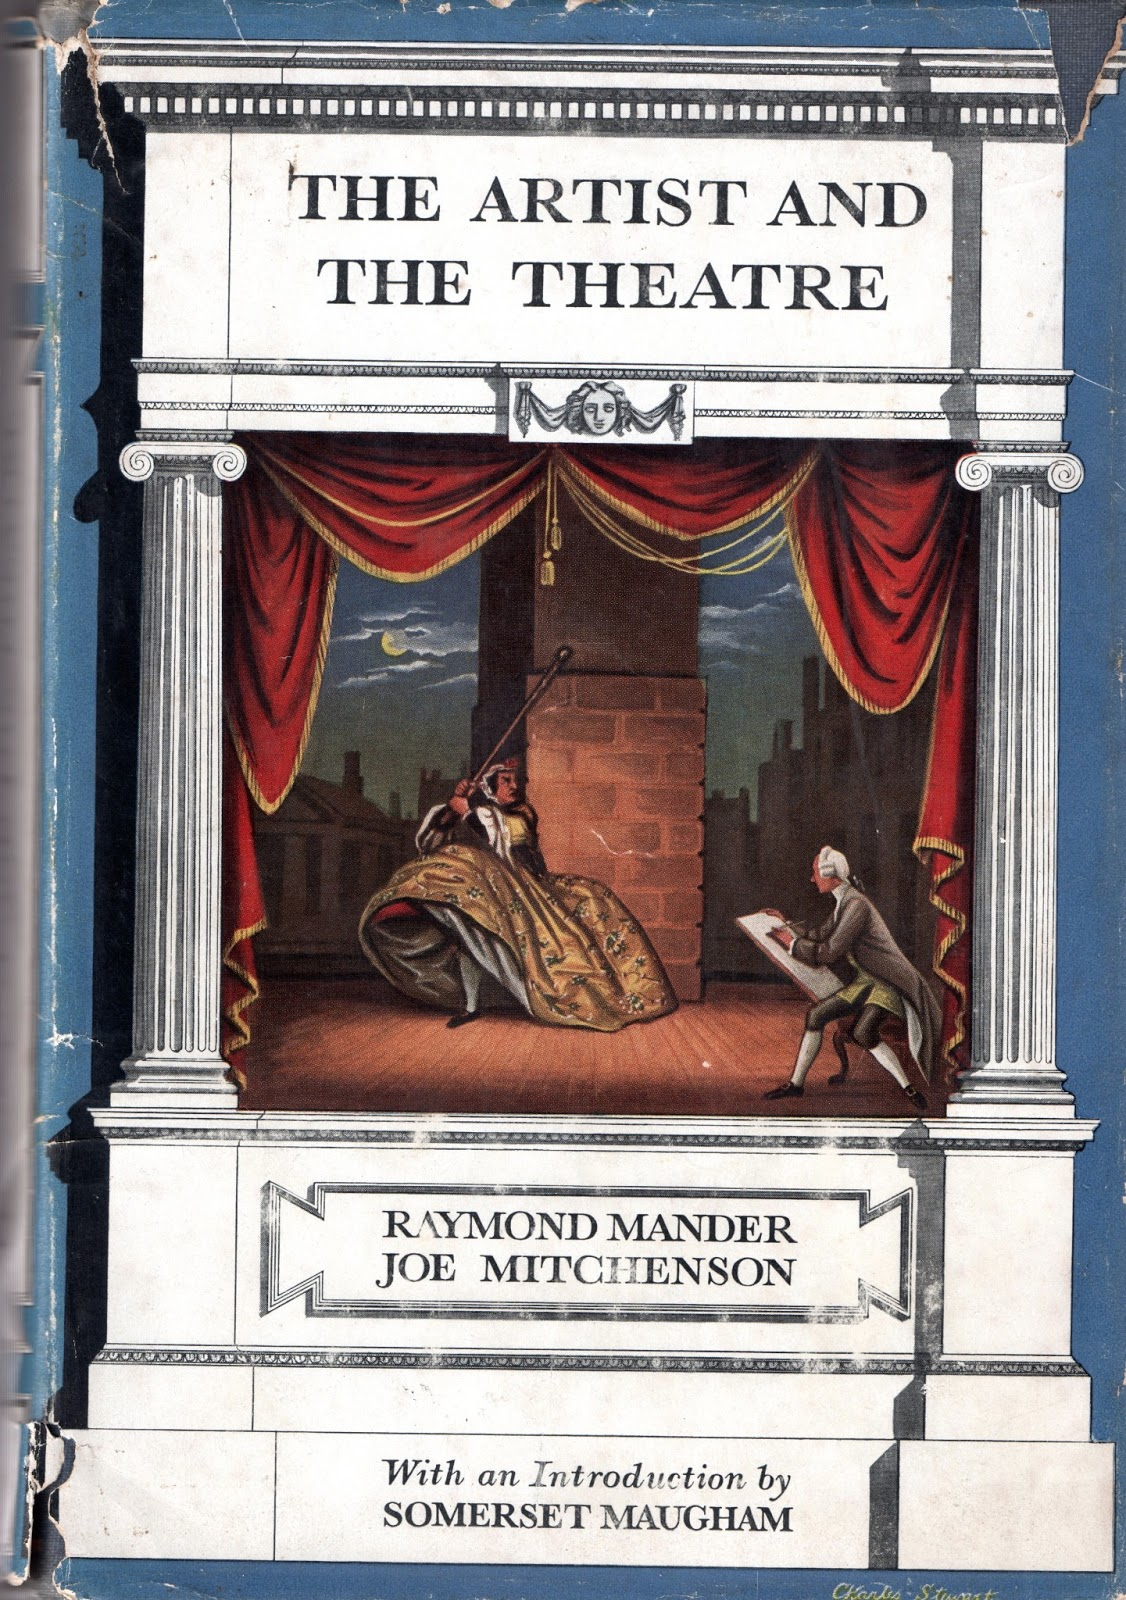 theatre maugham The time of the inquisition in spain provides what might have been a colorful and dramatic background for the story of catalina, a crippled girl made whole by divine.